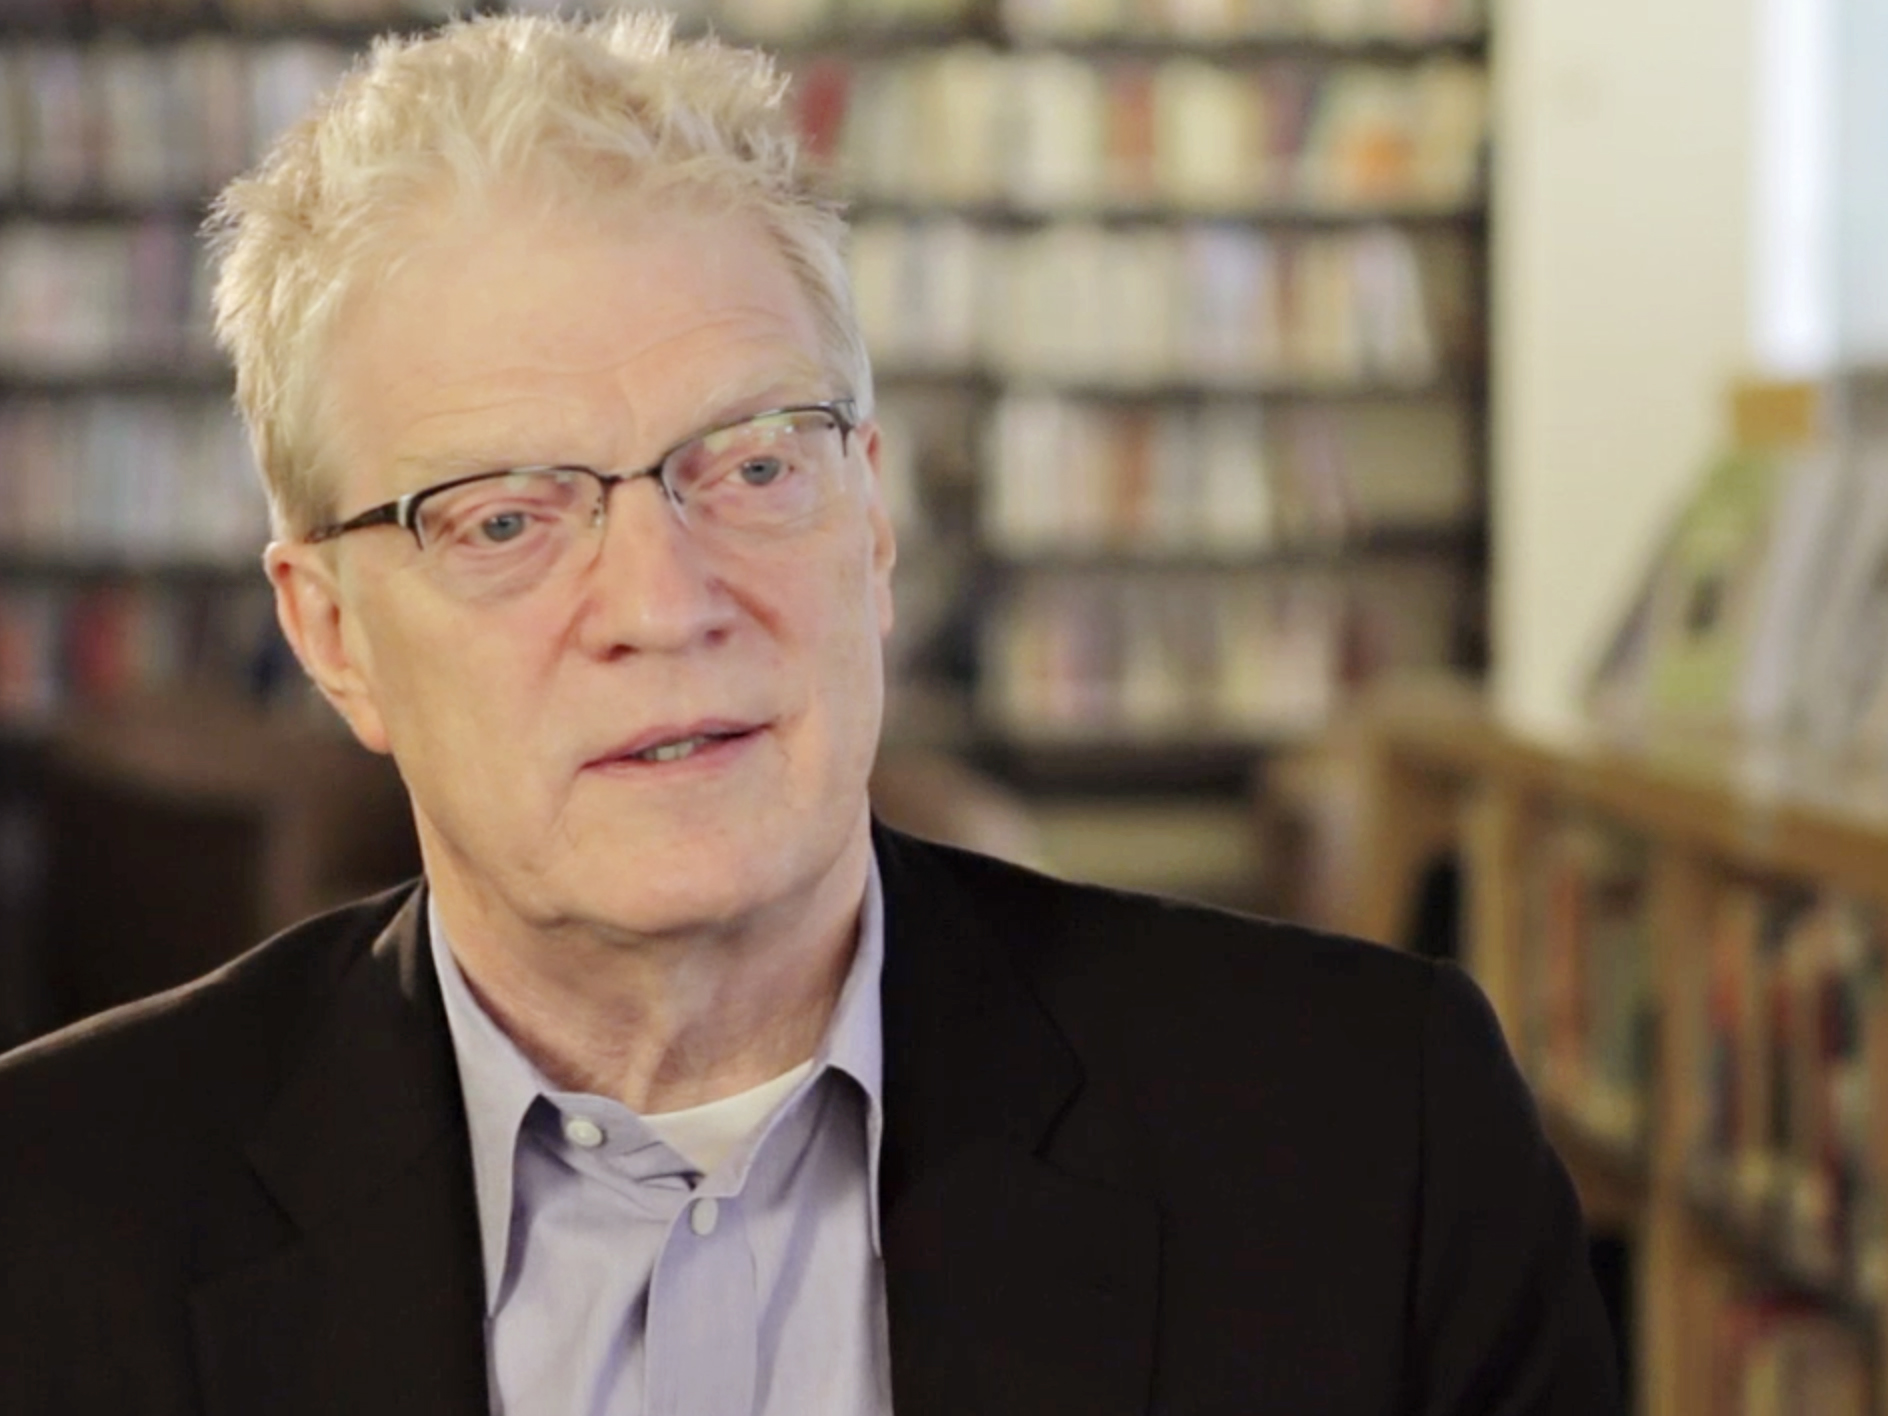 Sir Ken Robinson Libros Beyond Measure Filmthought Leaders Beyond Measure Film